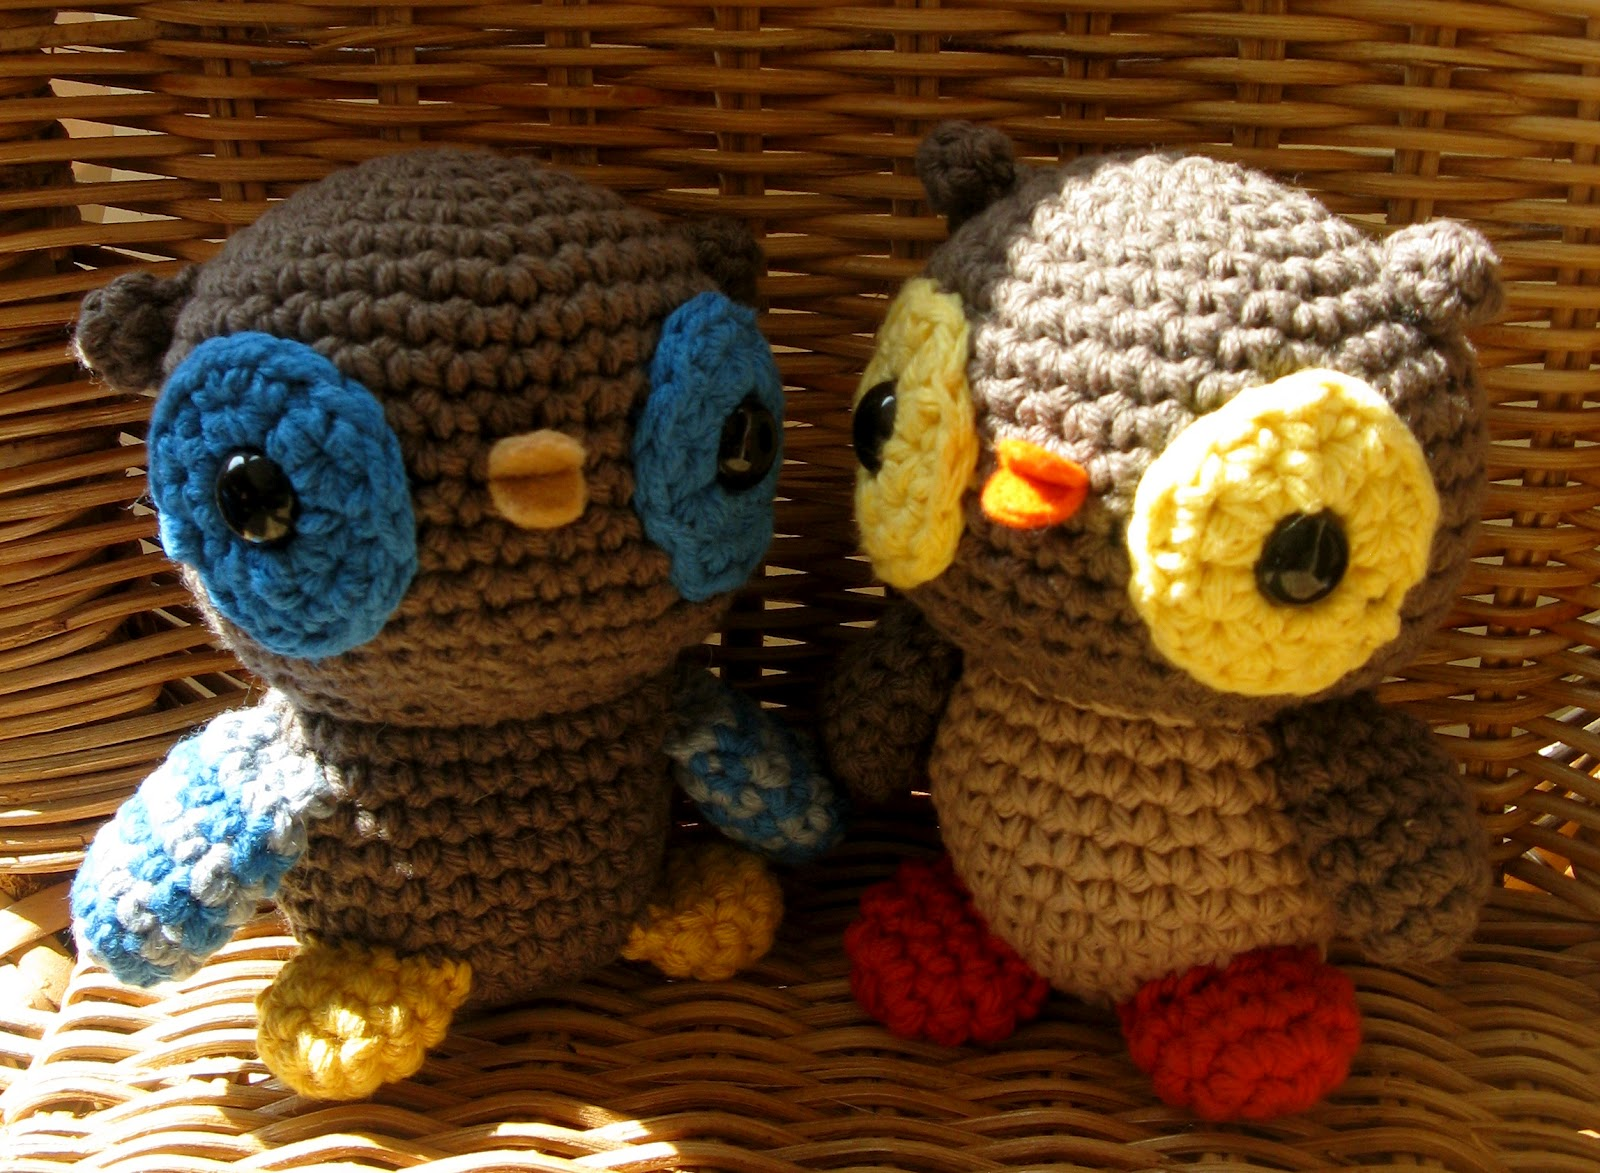 Amigurumi Patterns Owl : Ana Paulas Amigurumi Patterns & Random Cuteness: Little ...